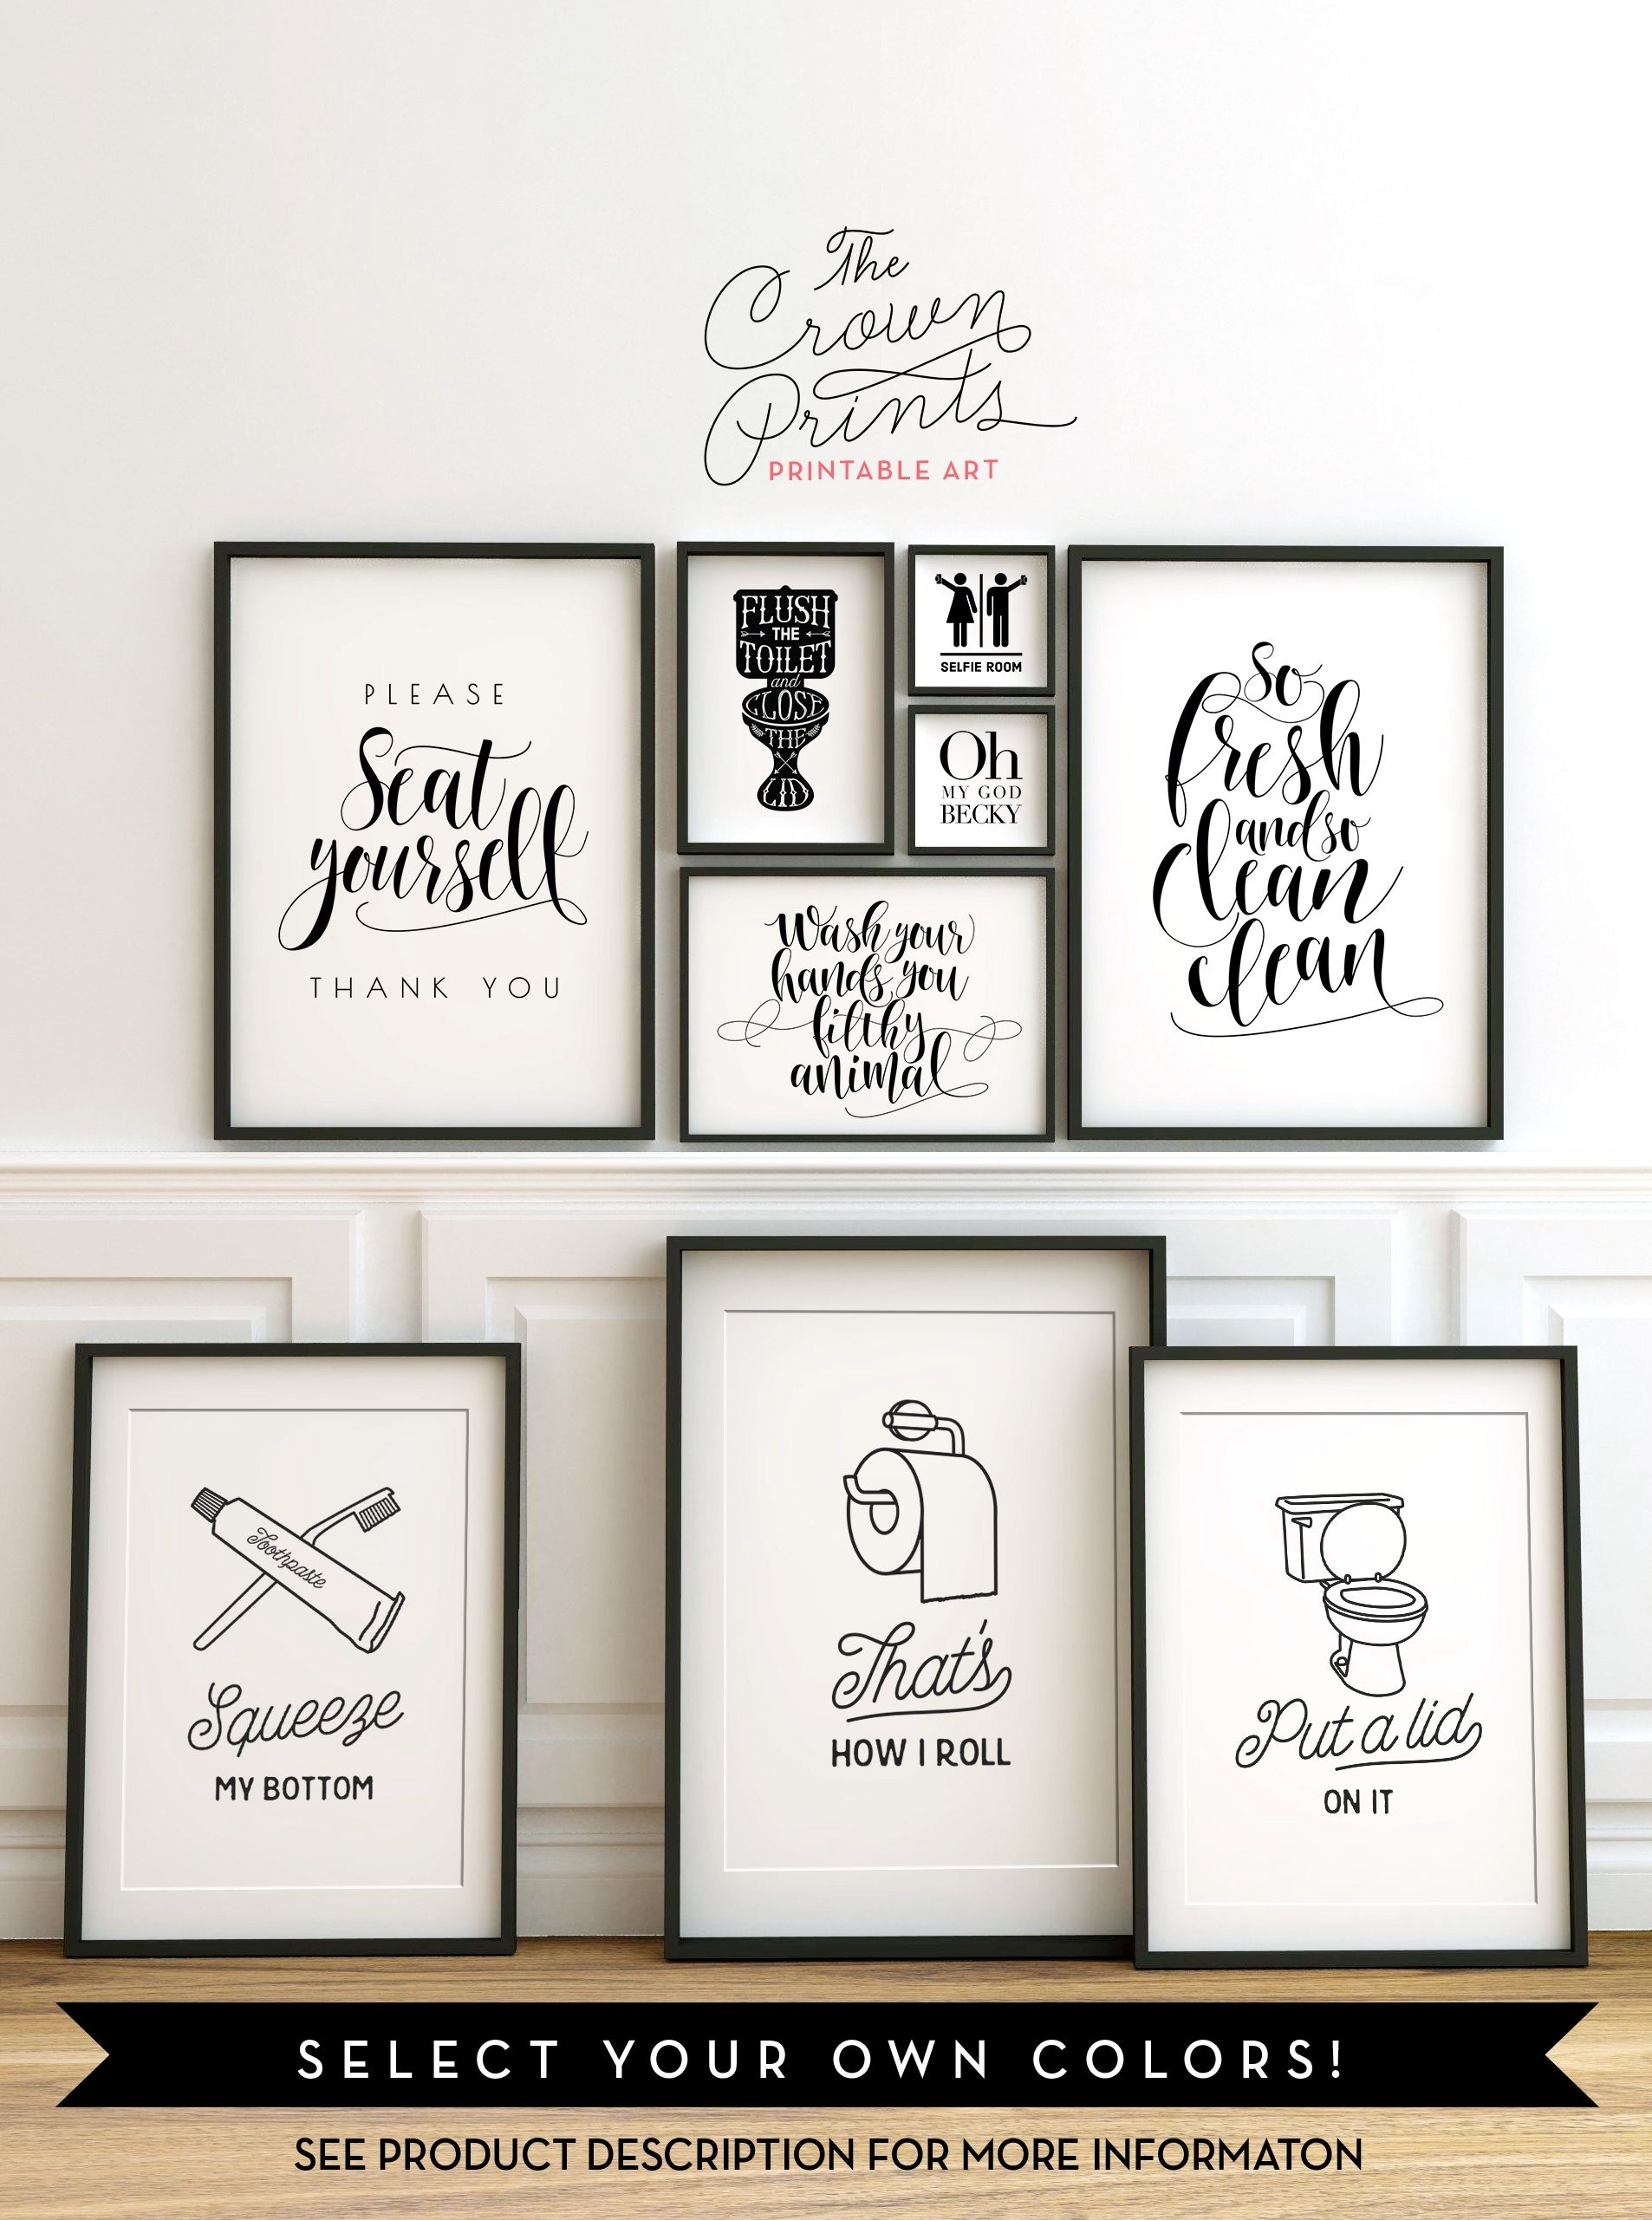 Printable Bathroom Wall Art From The Crown Prints On Etsy – Lots Of Within Current Bathroom Wall Art (View 11 of 15)